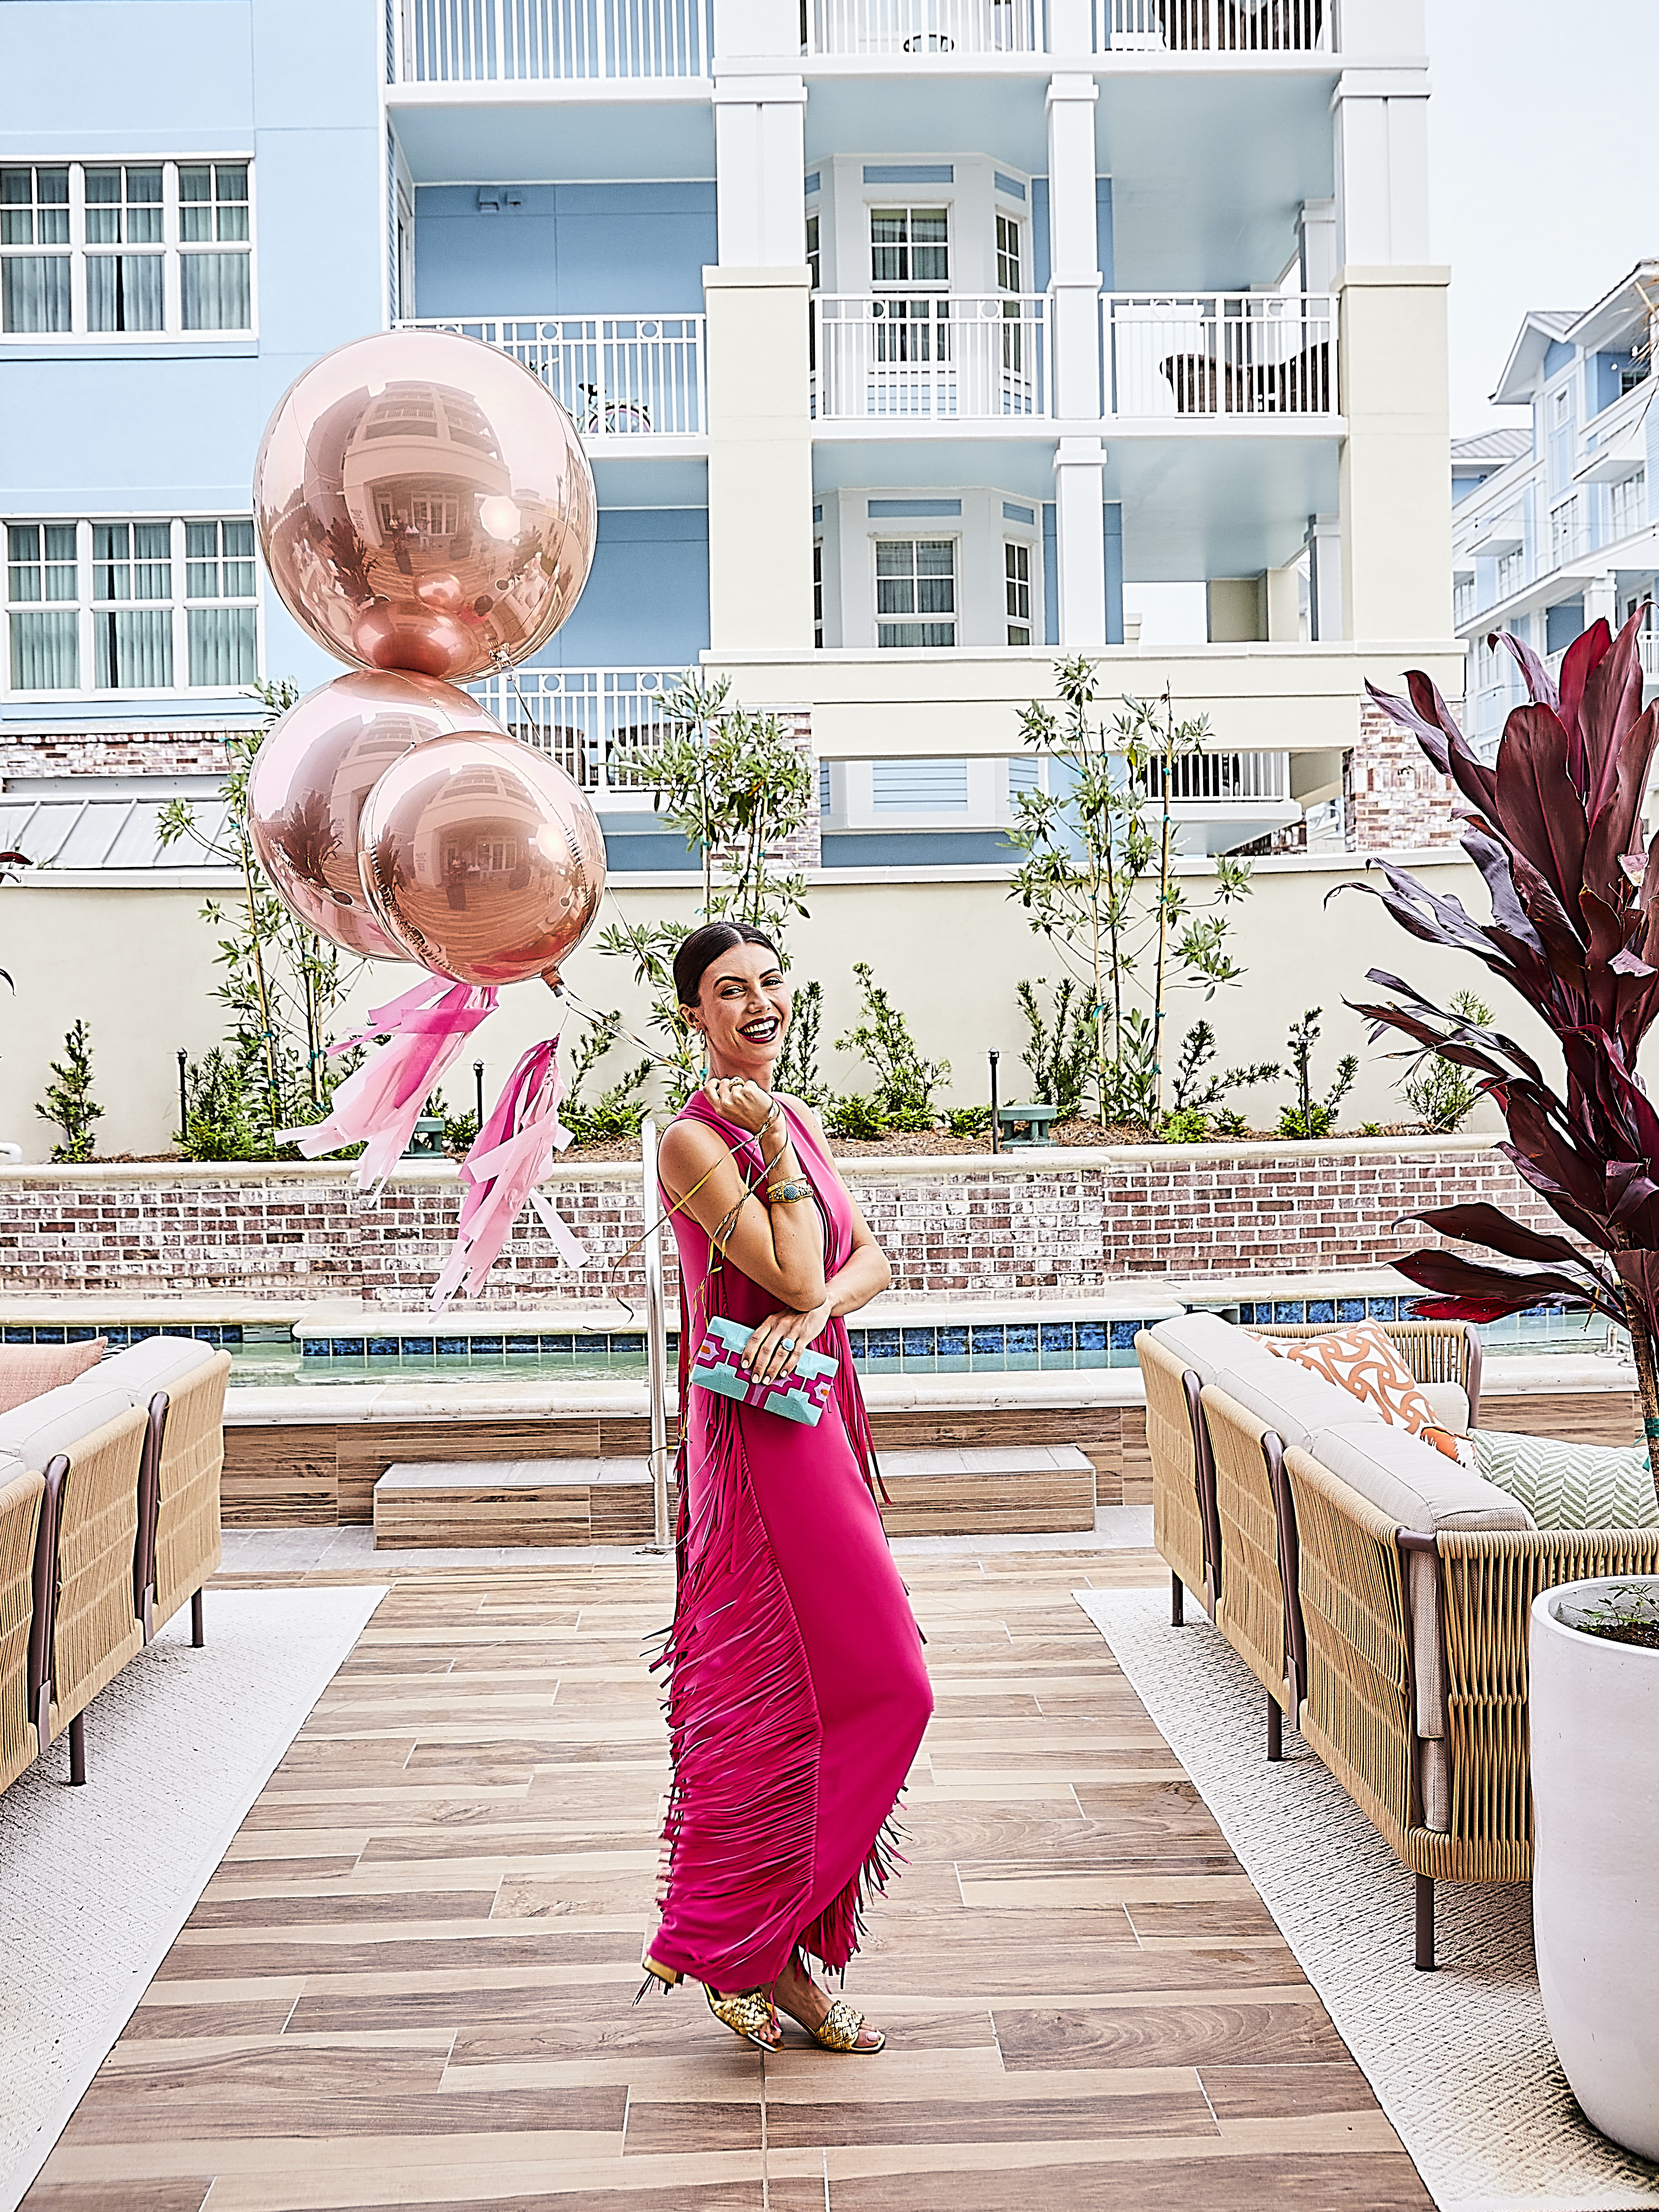 """Haute Pink: Catherine Regehr fringe gown, $1,970 at Gwynn's of Mount Pleasant; Demarson """"Luna"""" pearl earrings, $285 at Showroom; Roberto Coin 18K slim bangle with fleur-de-lis diamonds, $6,500 at M.P. Demetre Jewelers; Estate Collection gold bangle, $4,025, and JudeFrances """"Moroccan Marrakesh"""" turquoise ring, $2,200, both at Croghan's Jewel Box; old European diamond ring, $9,895 at Sandler's Diamonds & Time; Beatriz clutch, $260 at Shoes on King; Marc Fisher """"Nahea"""" block-heel sandal, $150 at Rhodes Boutique; balloons courtesy of BoomBalloon Charleston"""